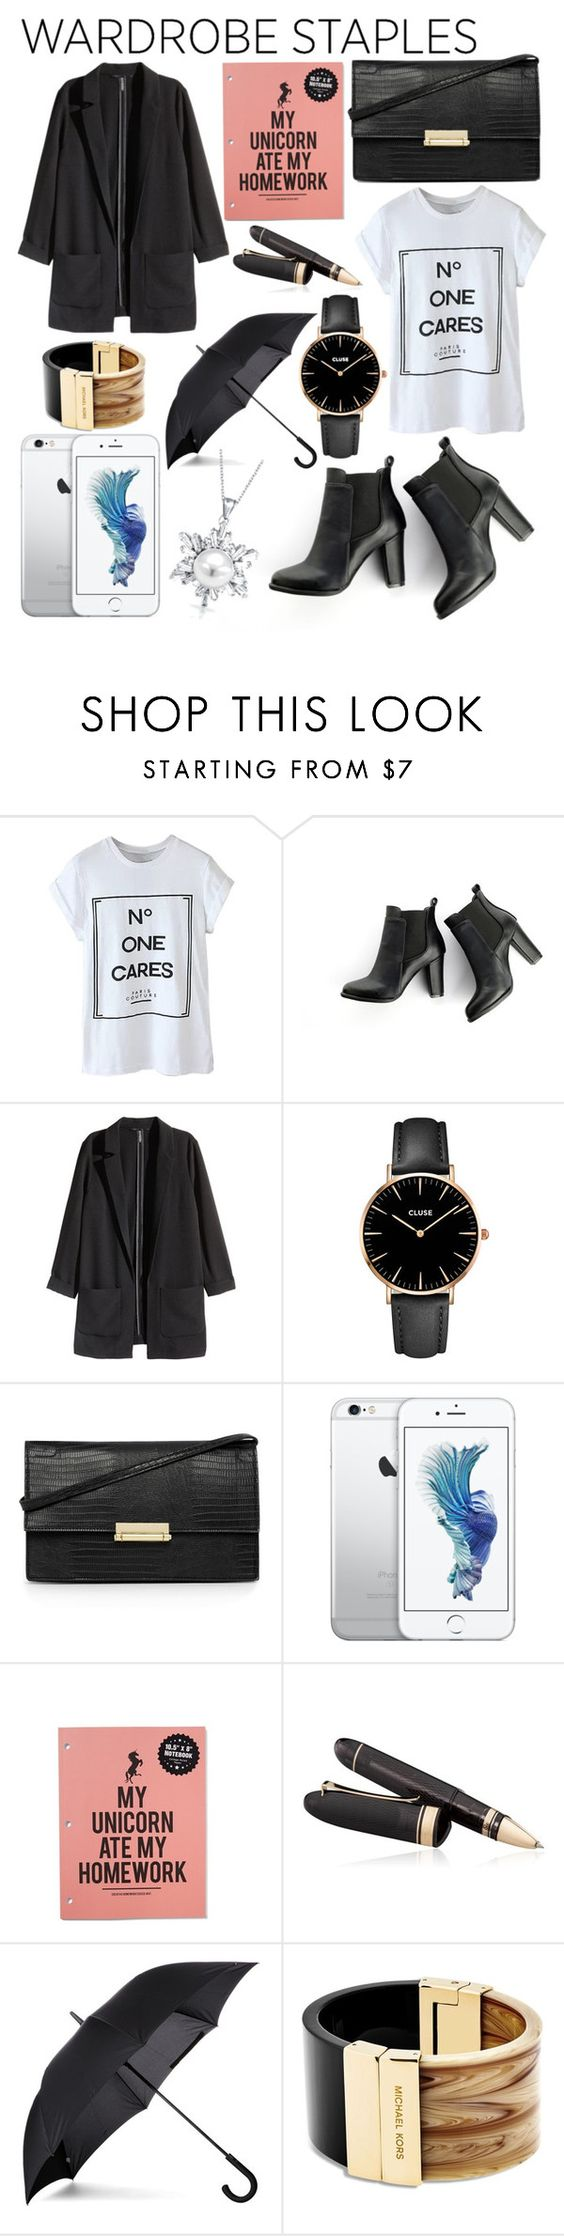 """""""Wardrobe Staple: White T-Shirt"""" by voguefully ❤ liked on Polyvore featuring SWEET MANGO, H&M, CLUSE, Warehouse, OMAS, Fulton, Michael Kors and Bling Jewelry"""